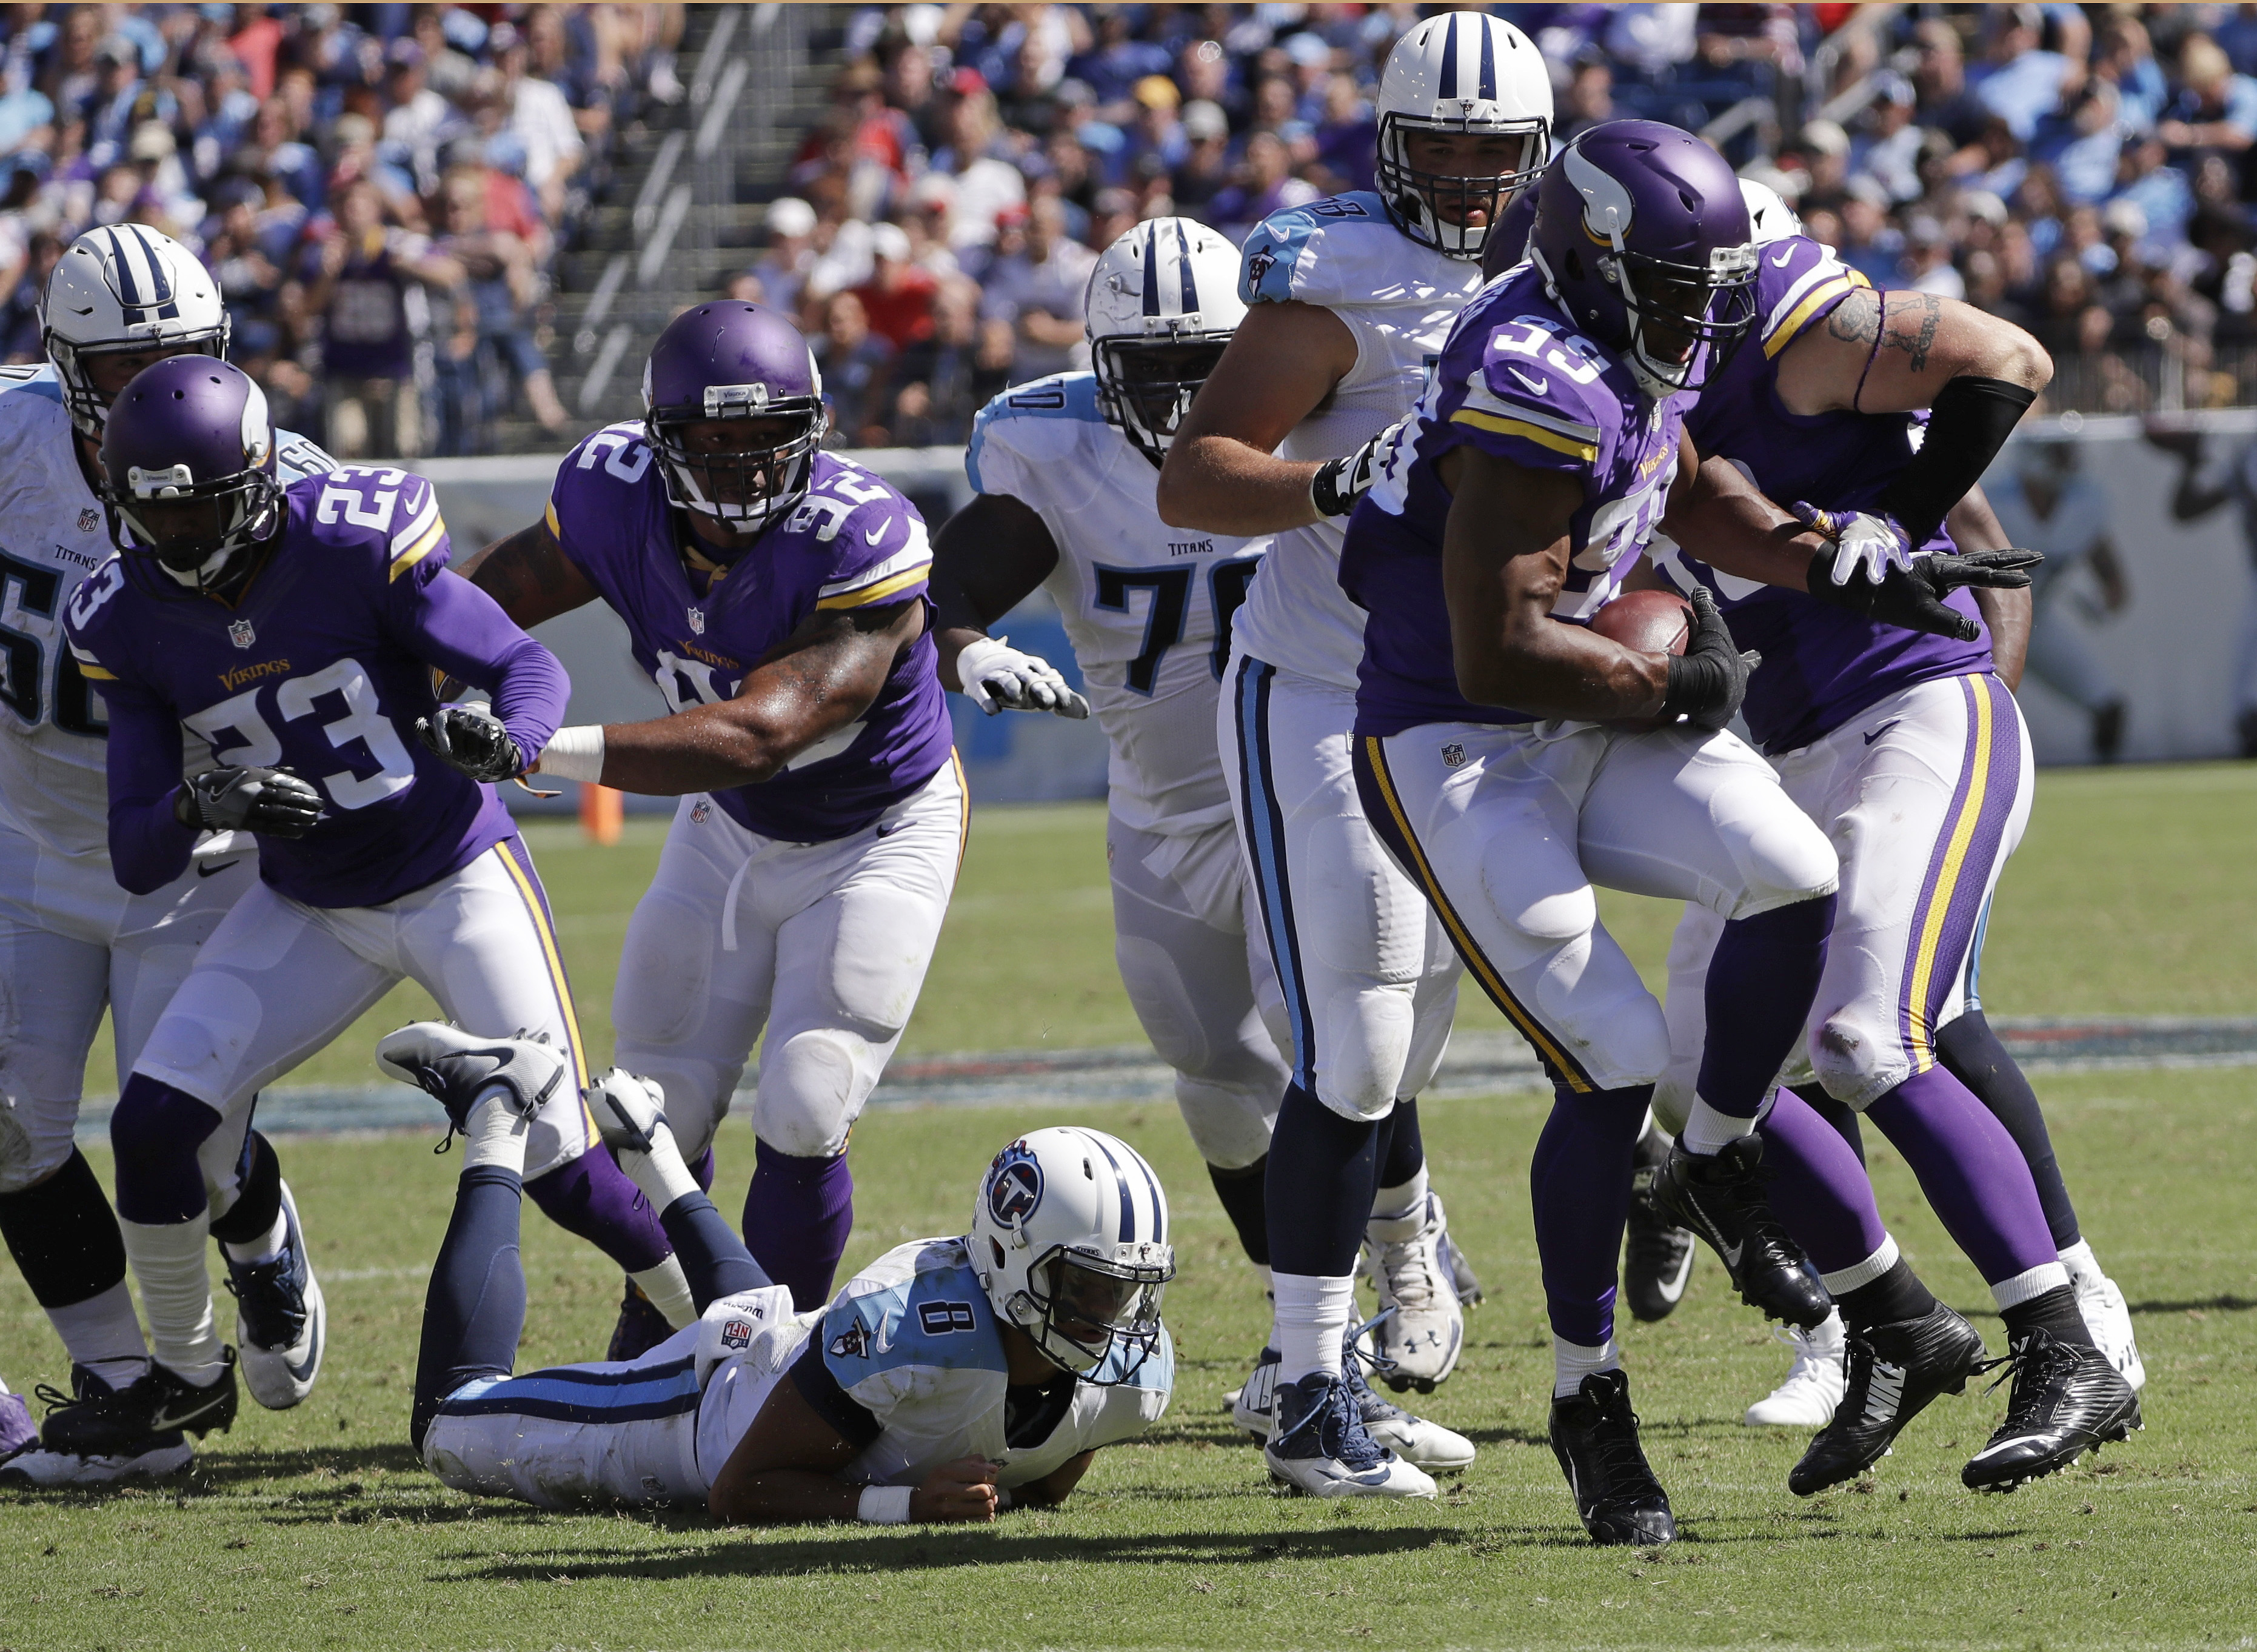 Minnesota Vikings defensive end Danielle Hunter (99) recovers a fumble by Tennessee Titans quarterback Marcus Mariota (8) and runs the ball 24 yards for a touchdown in the second half of an NFL football game Sunday, Sept. 11, 2016, in Nashville, Tenn. (AP